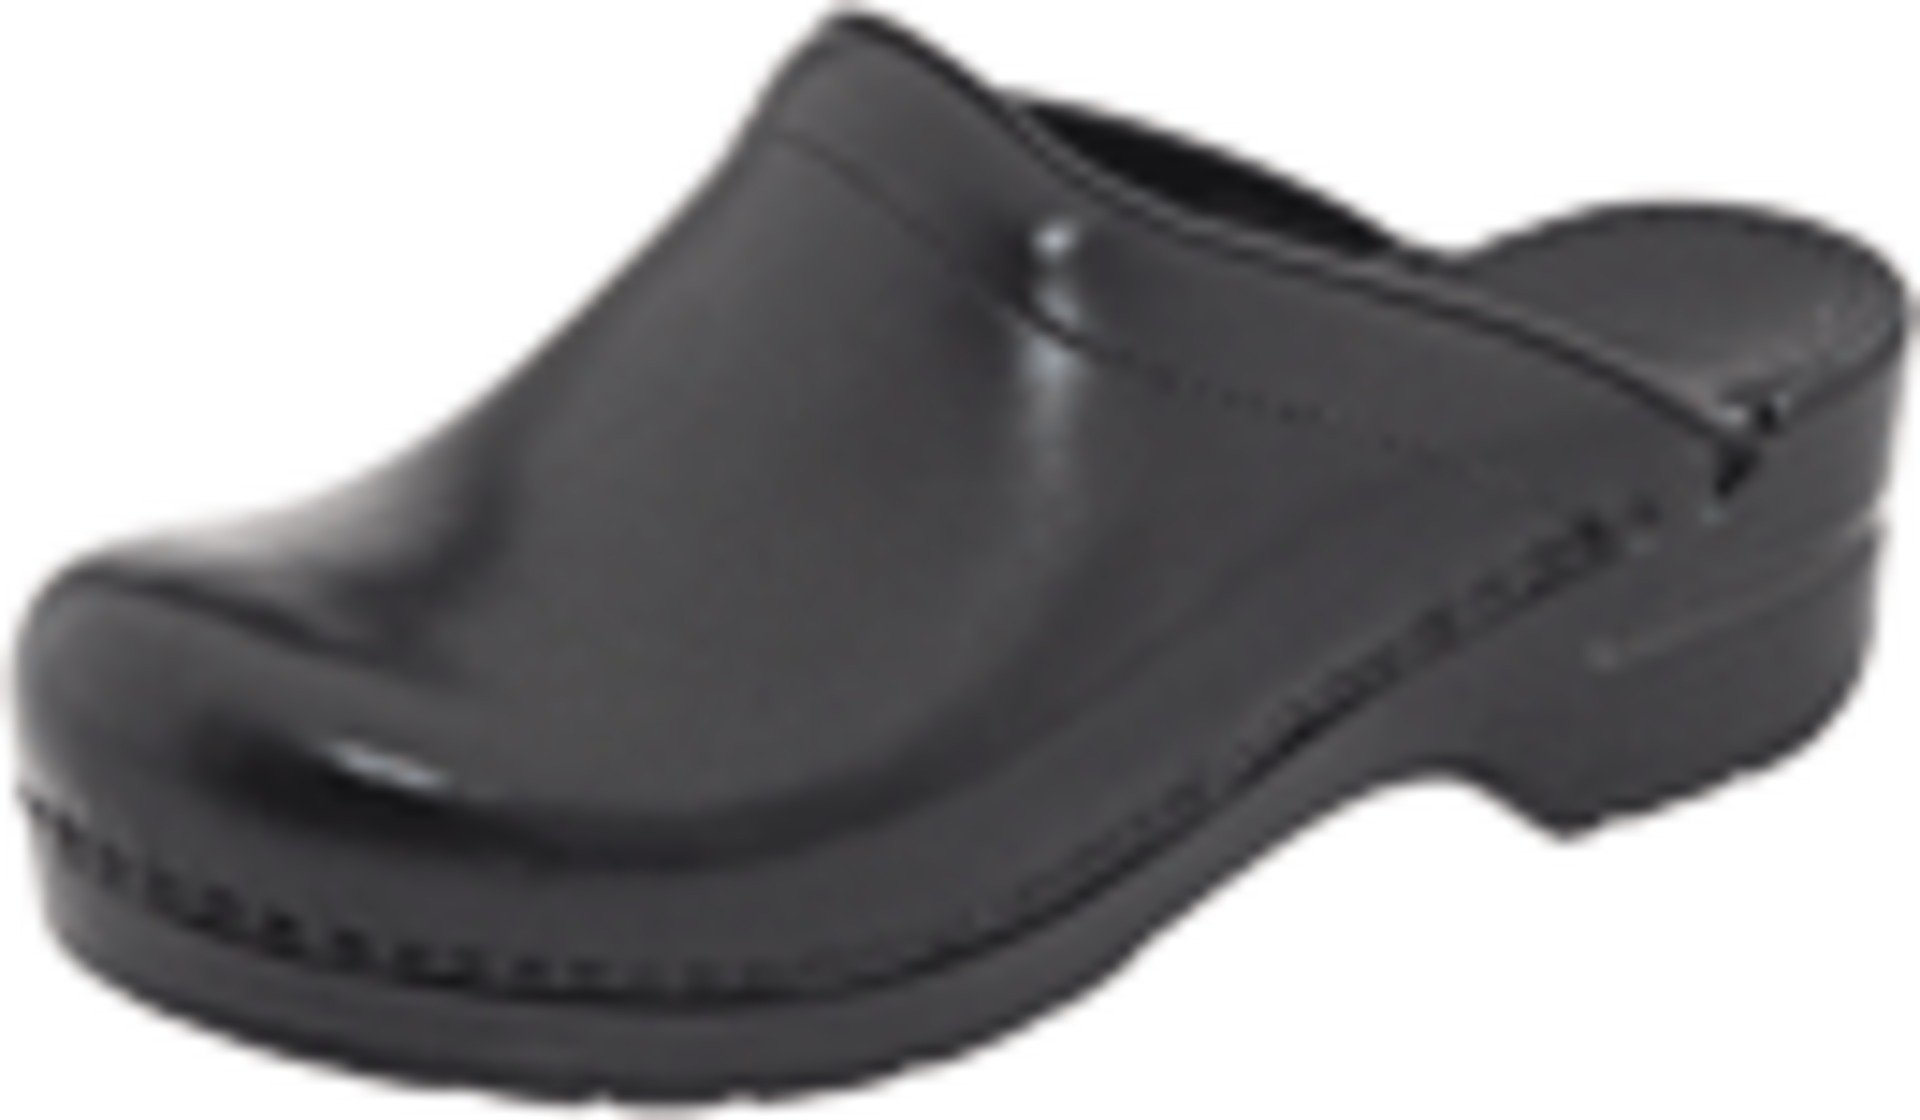 Dansko Women's Sonja Black Cabrio Clog/Mule 35 (US Women's 4.5-5) Regular